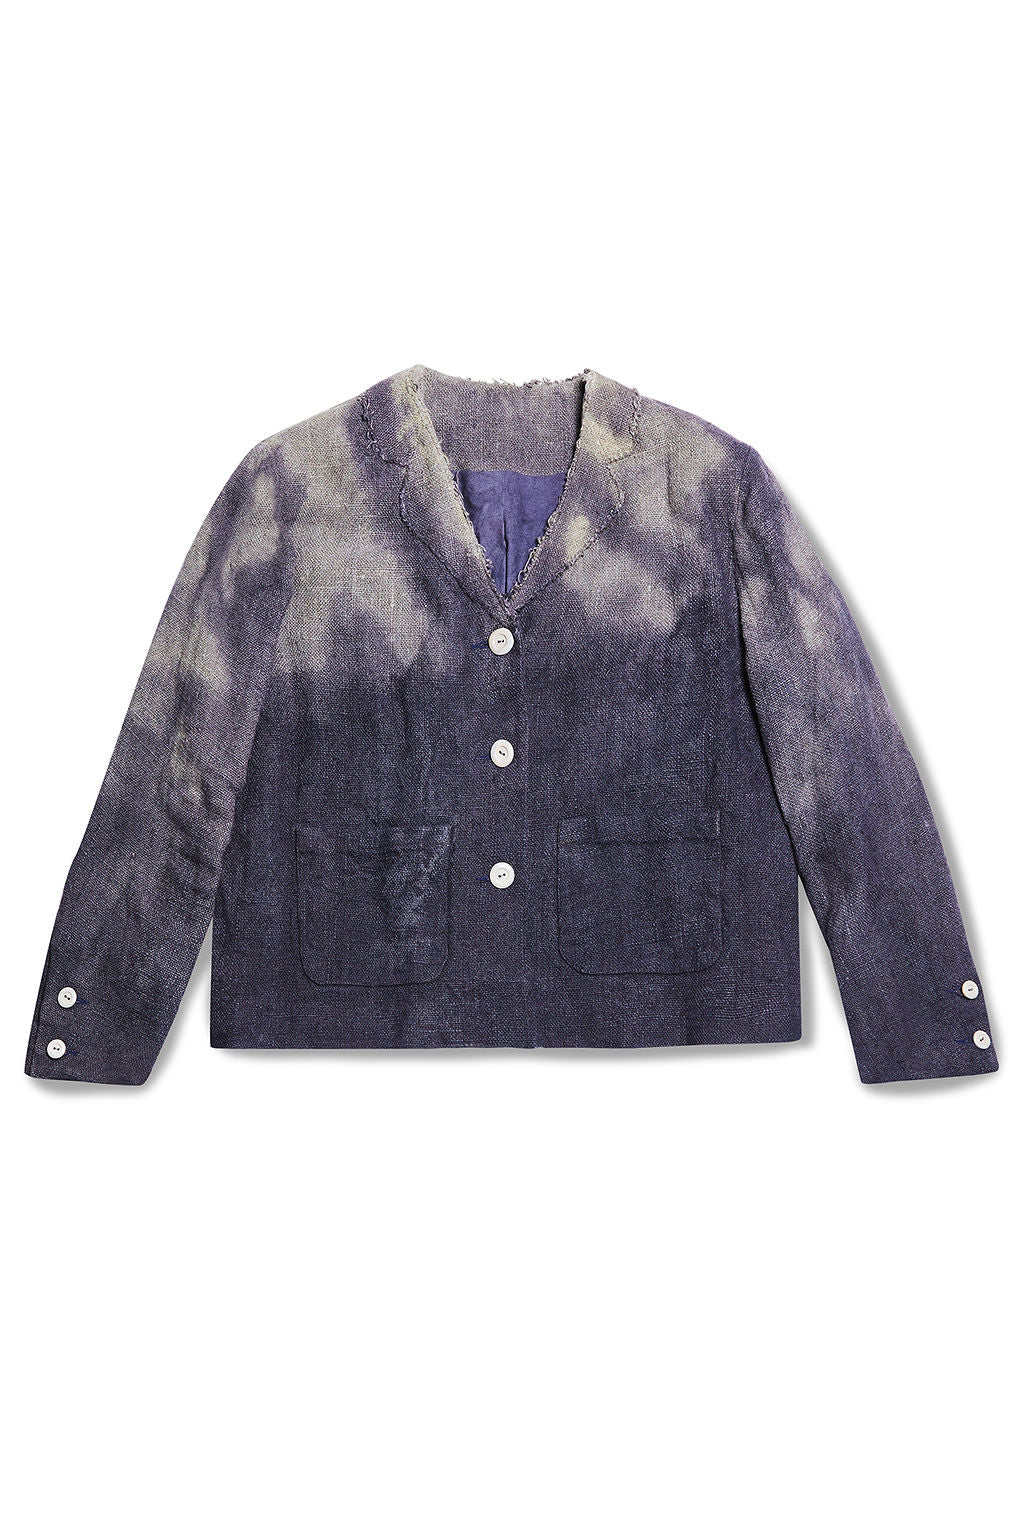 Blazing Dip Dyed Jacket